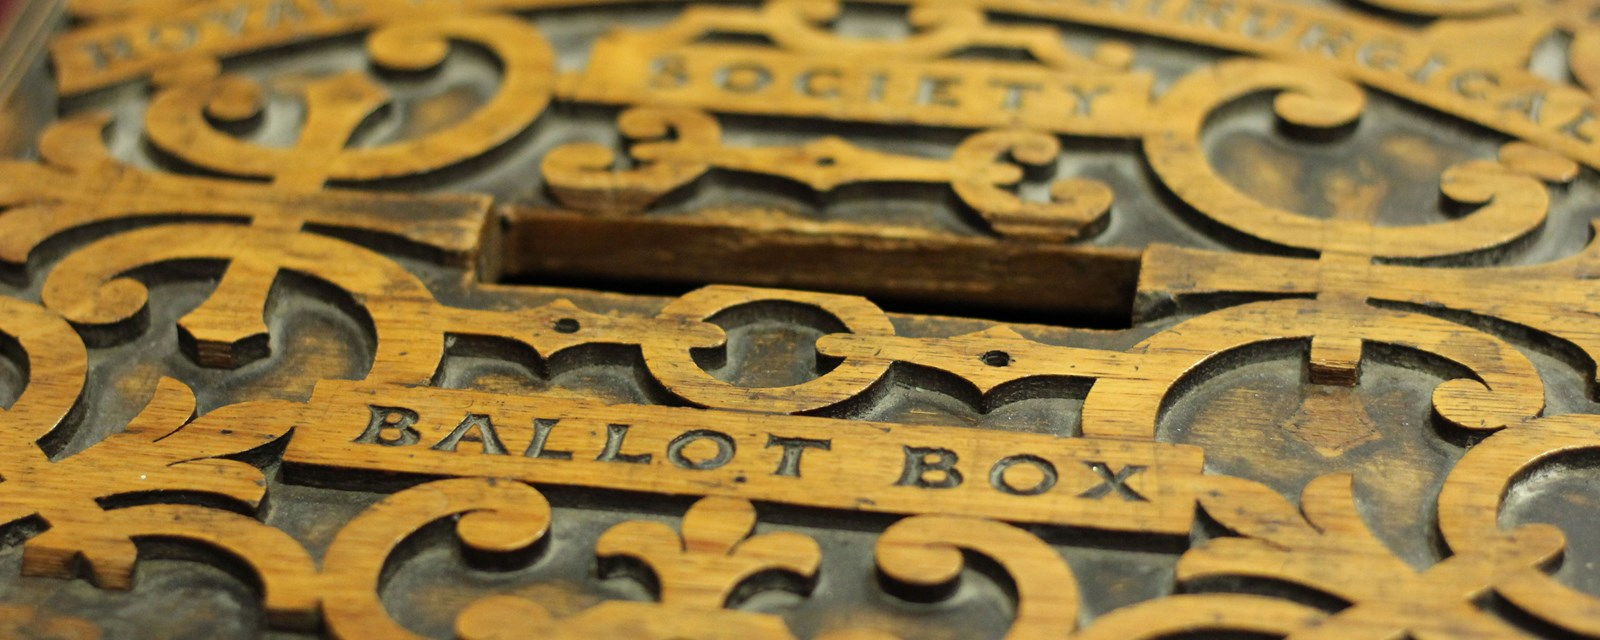 Library ballot box